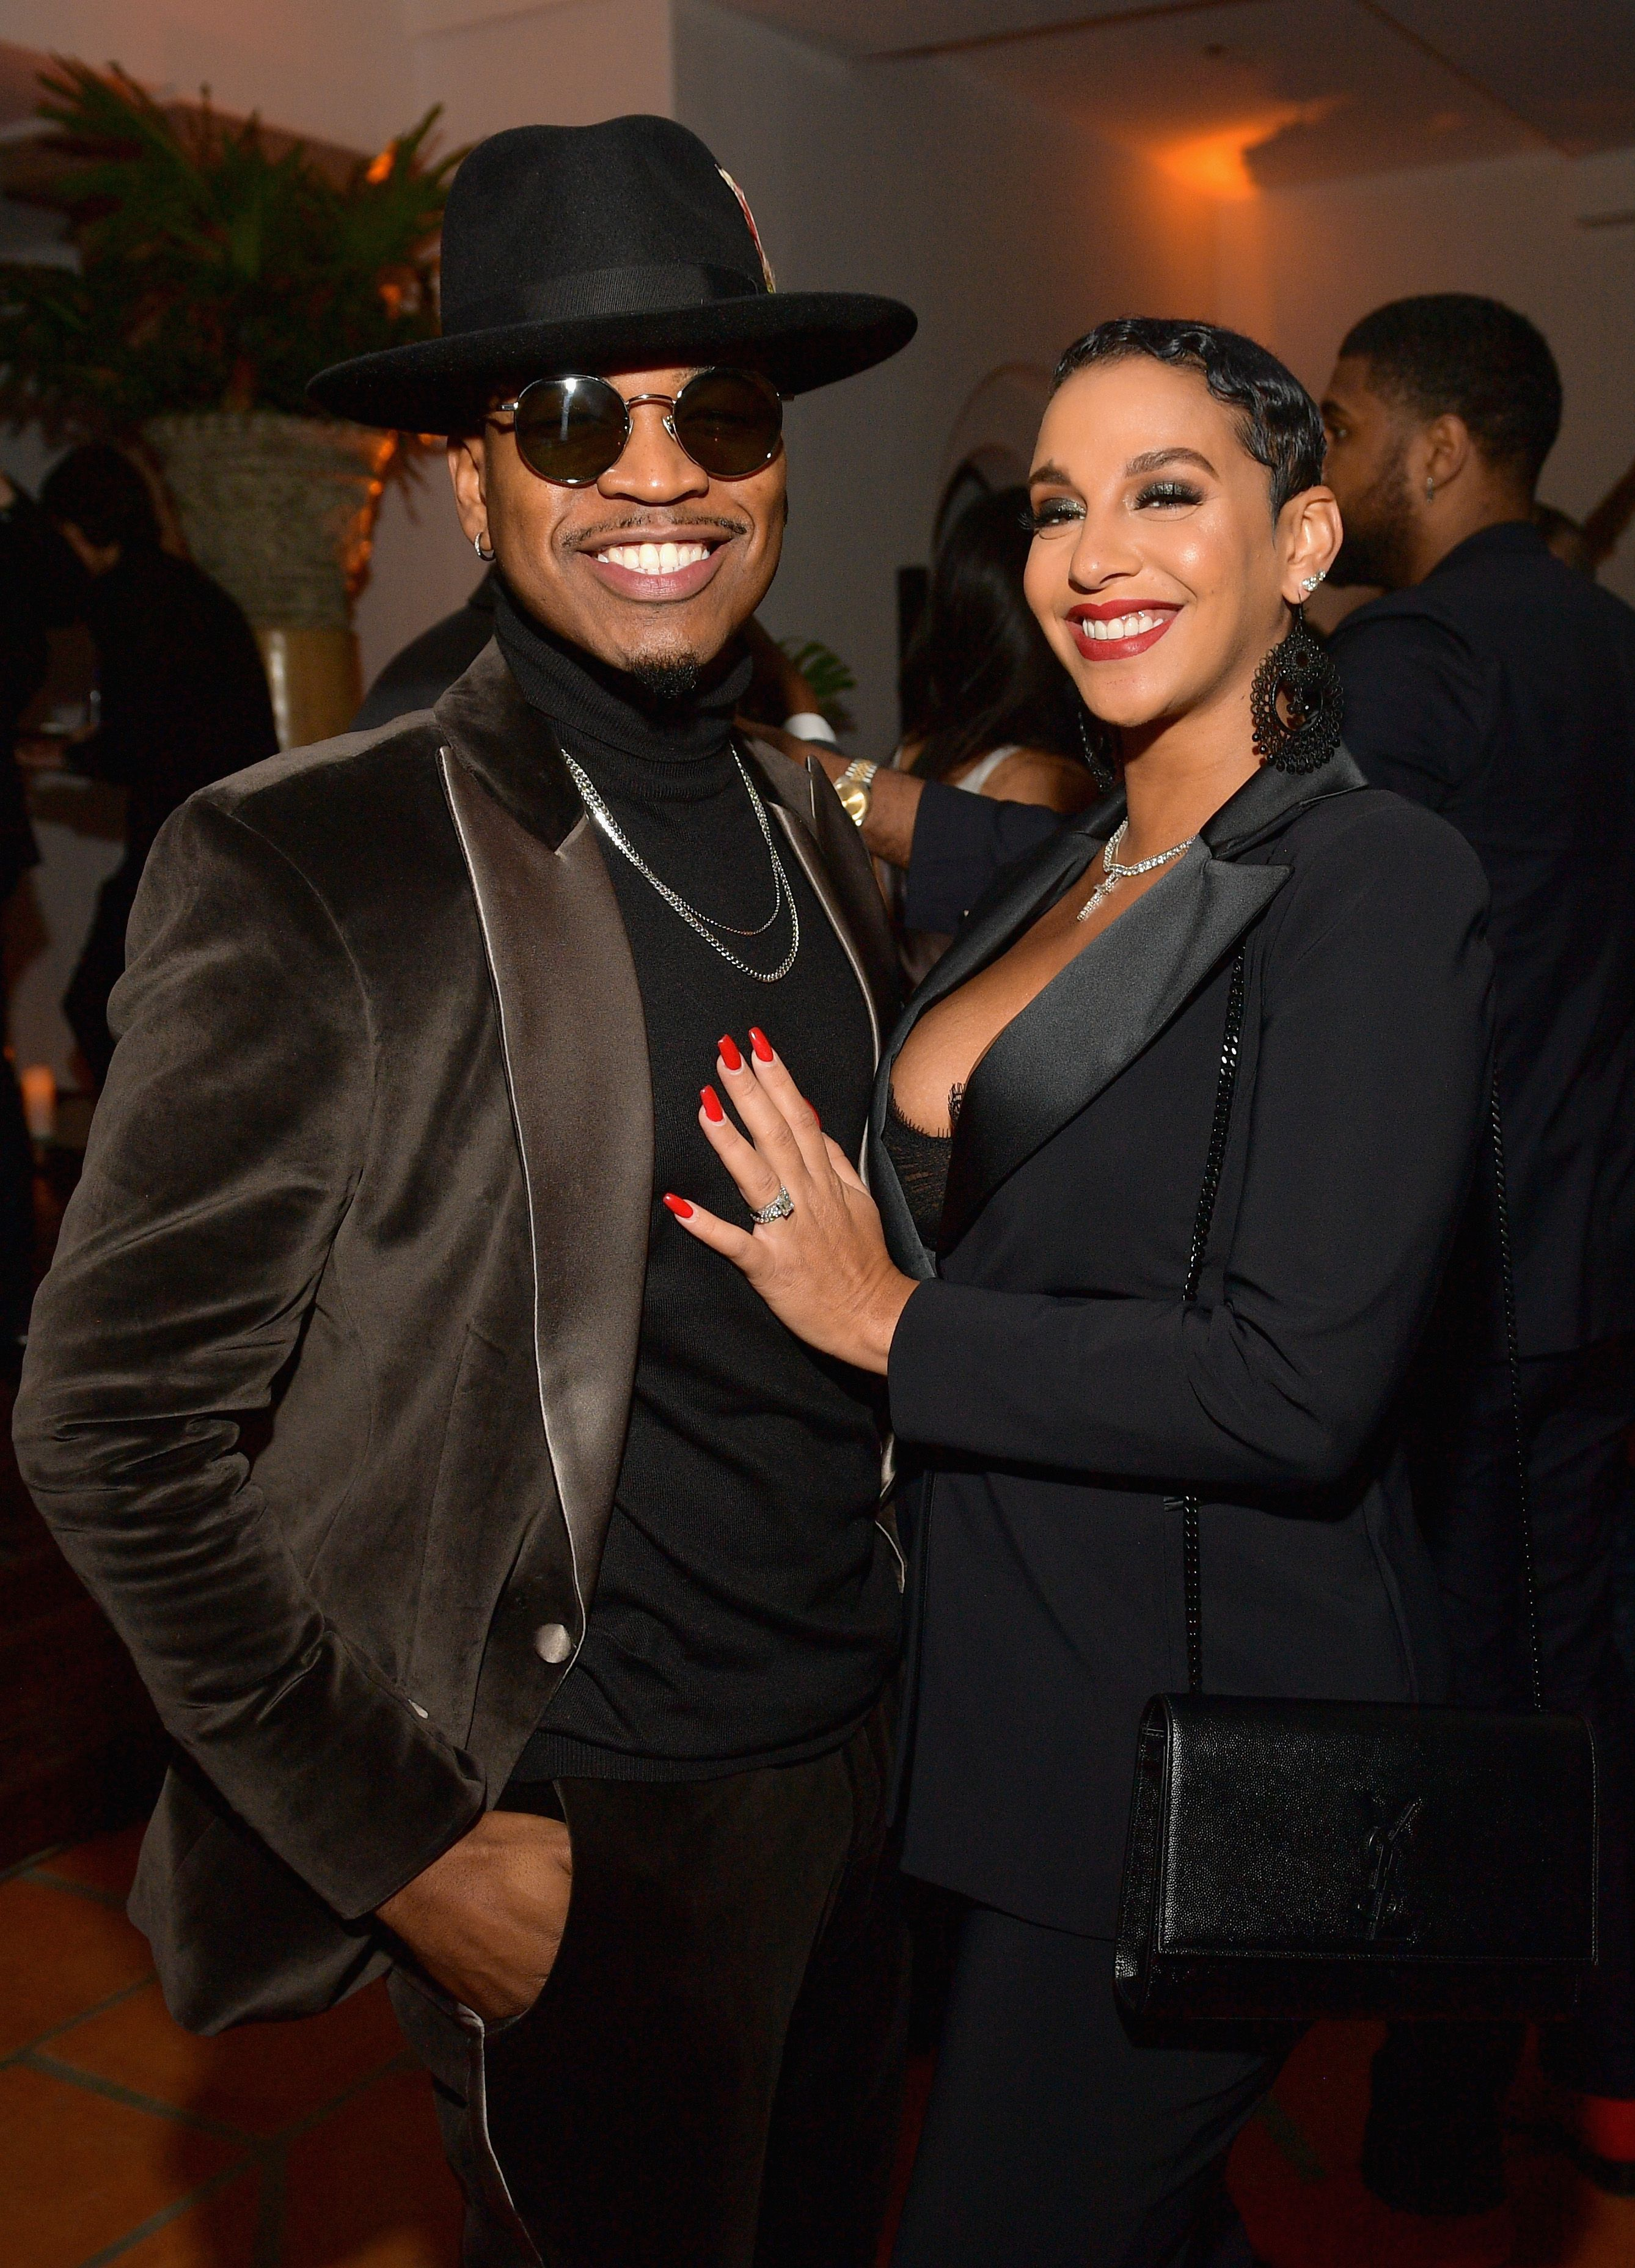 Ne-Yo and Crystal Renay Smith at the 2018 GQ Men of the Year Party on December 6, 2018 in Beverly Hills, California. | Photo: Getty Images